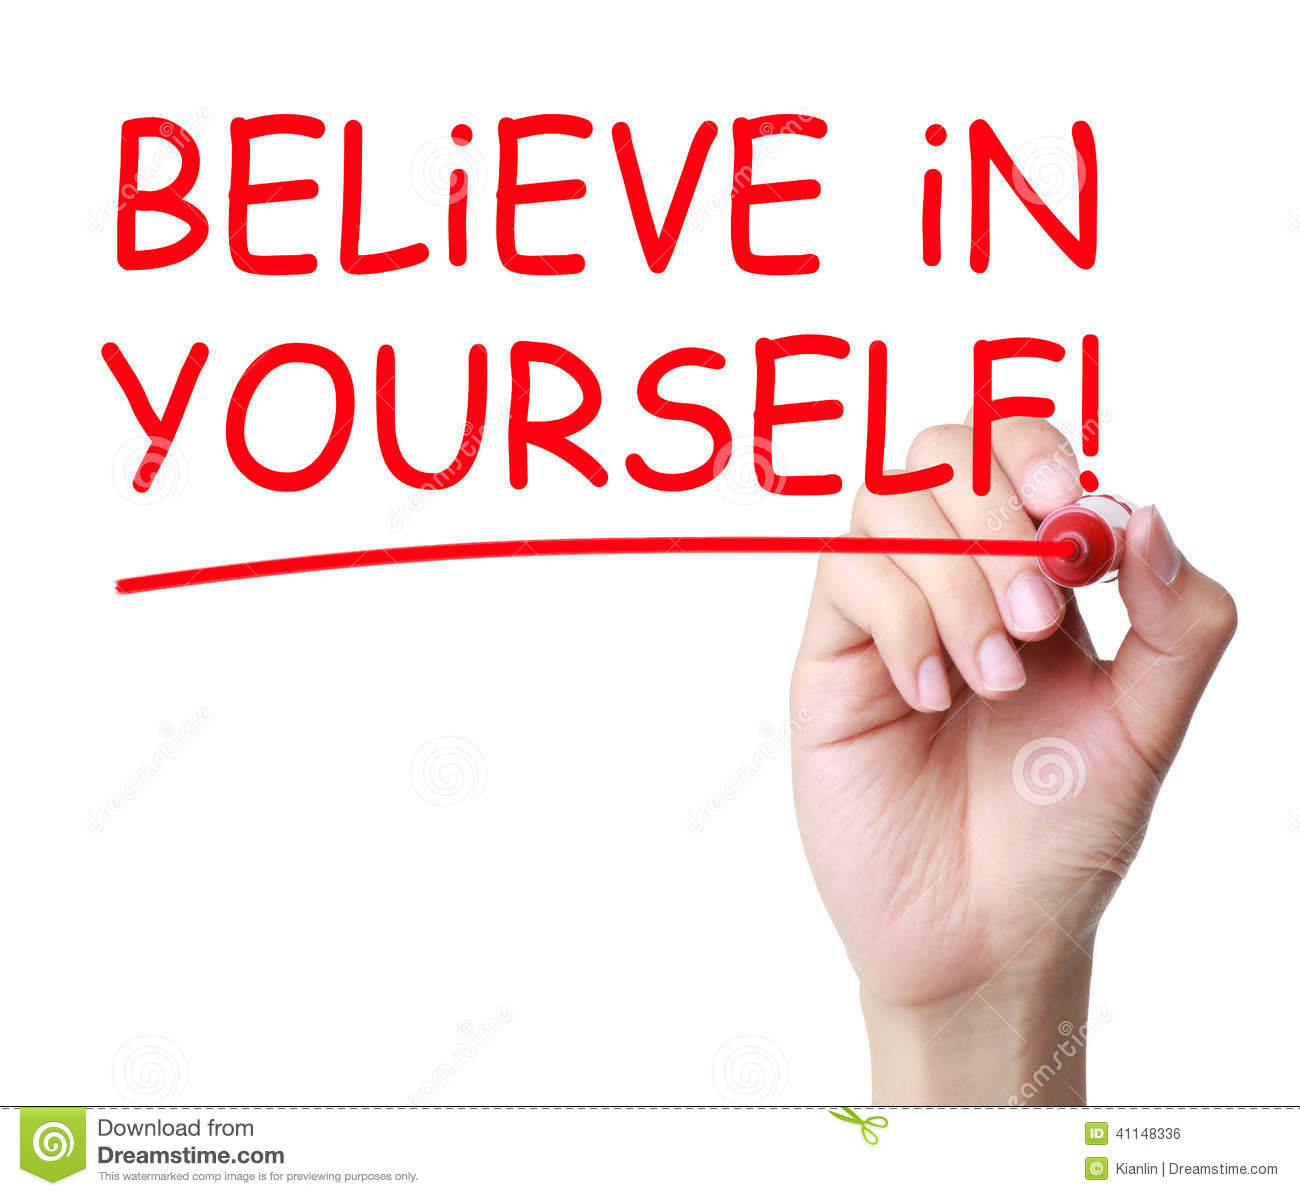 Believe in yourself clipart.